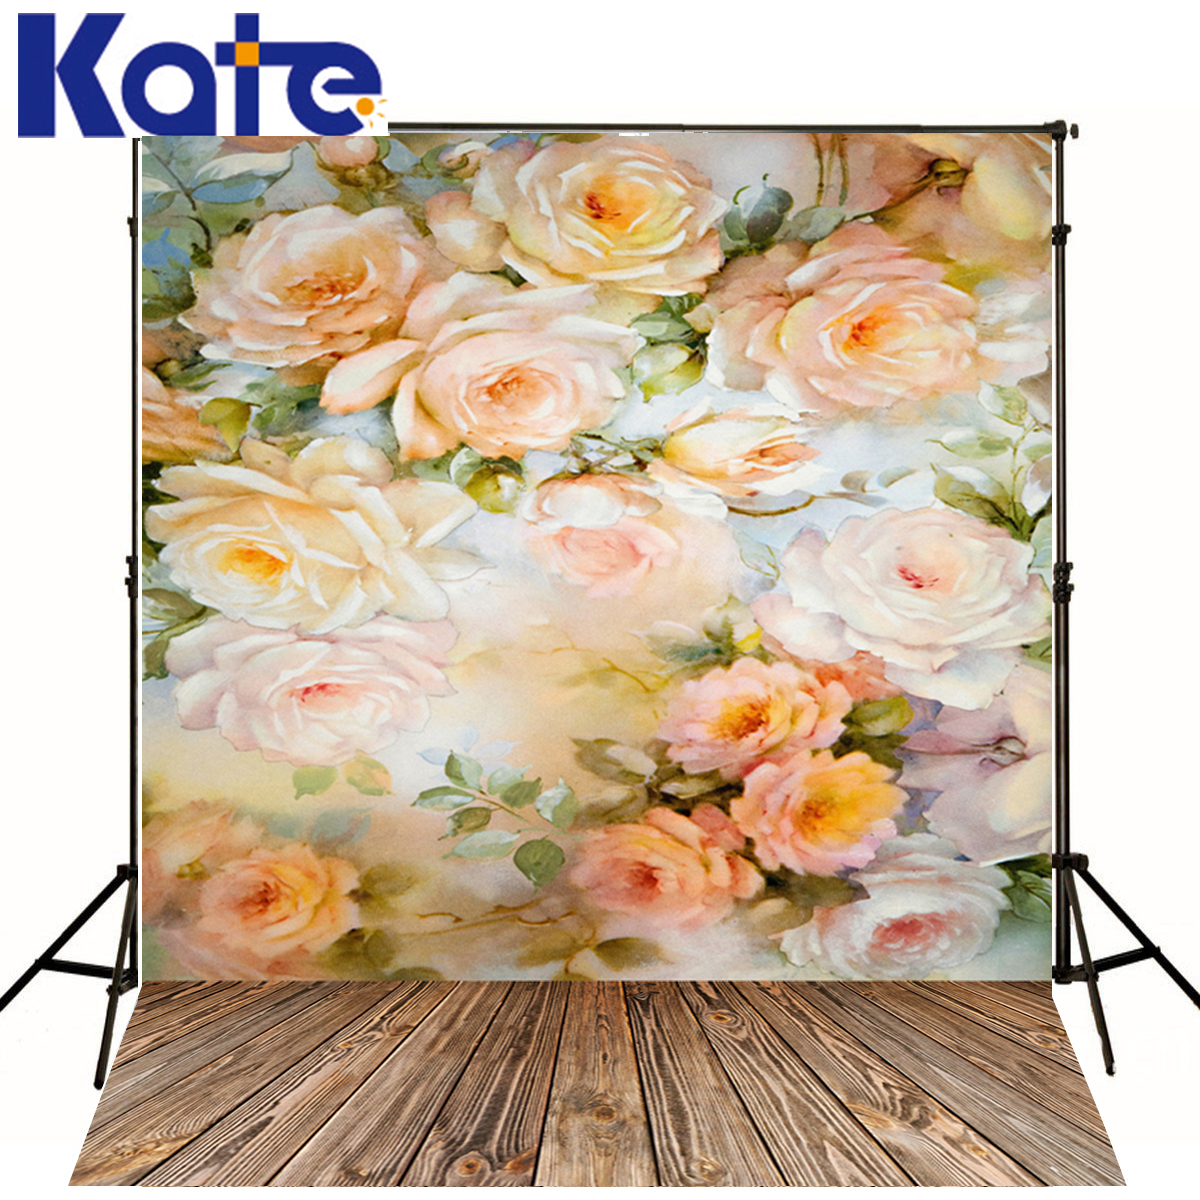 Kate Wedding Backdrops Photography Flower Baby Fondo Fotografico Boda Wood Floor Photocall Background For Photo Studio J01678 kate photo background wedding backdrop pink photography backdrops vintage wood floor background for photography studio